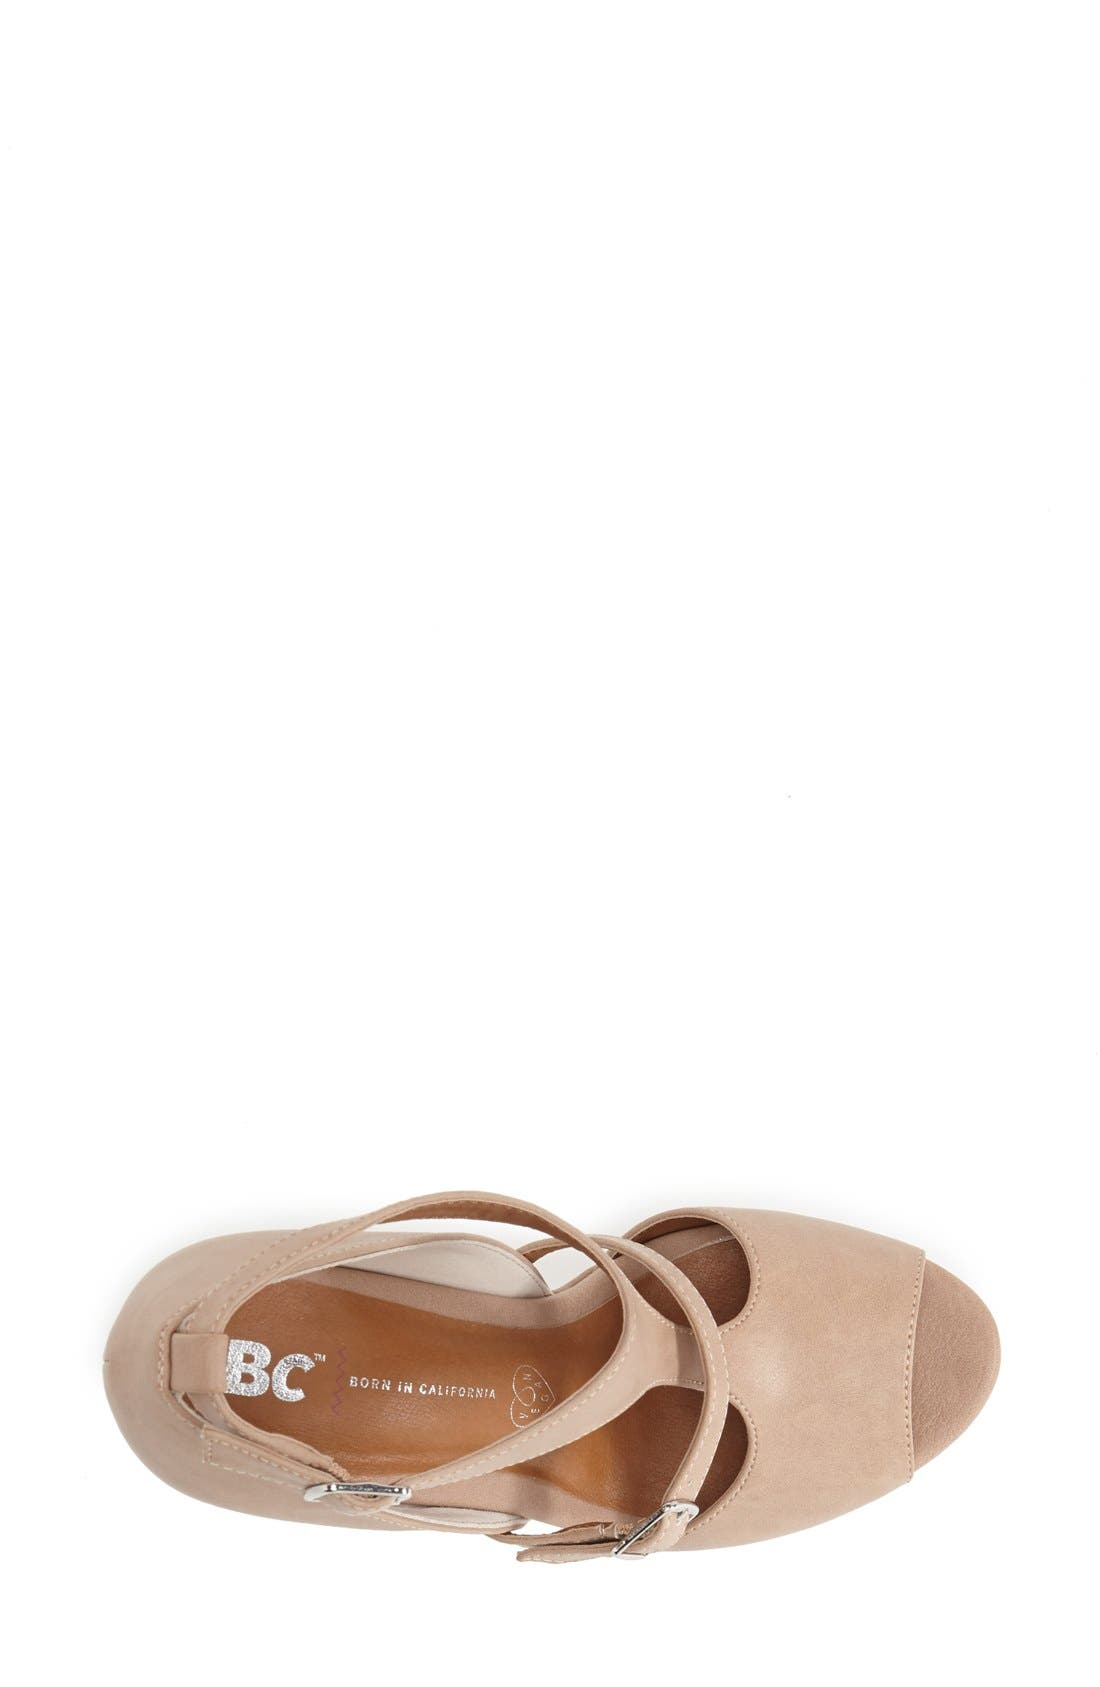 Alternate Image 3  - BC Footwear 'Lionness' Faux Leather Wedge Sandal (Women)